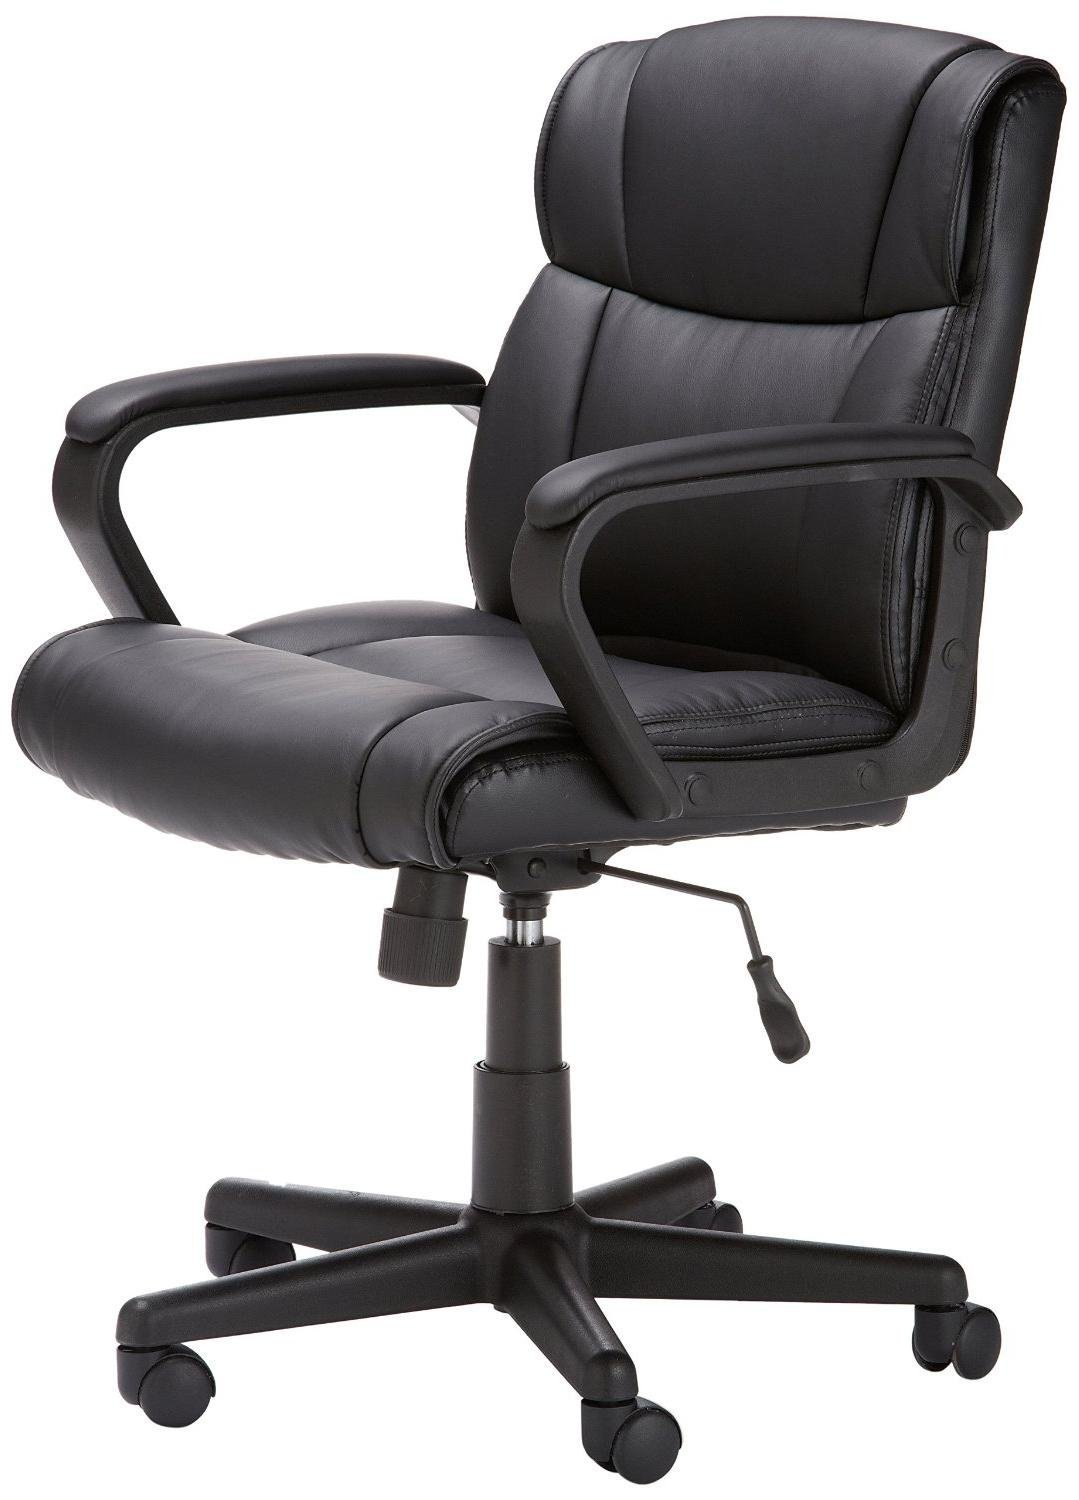 Best Office Chairs.Mid-Back Office Chair.Leather Mid-Back Office Chair.Ergonomic Computer Chair.Ergonomic Kneeling Chair.Black Office Chair & EBOOK AWESOME HOME DECOR IDEAS.